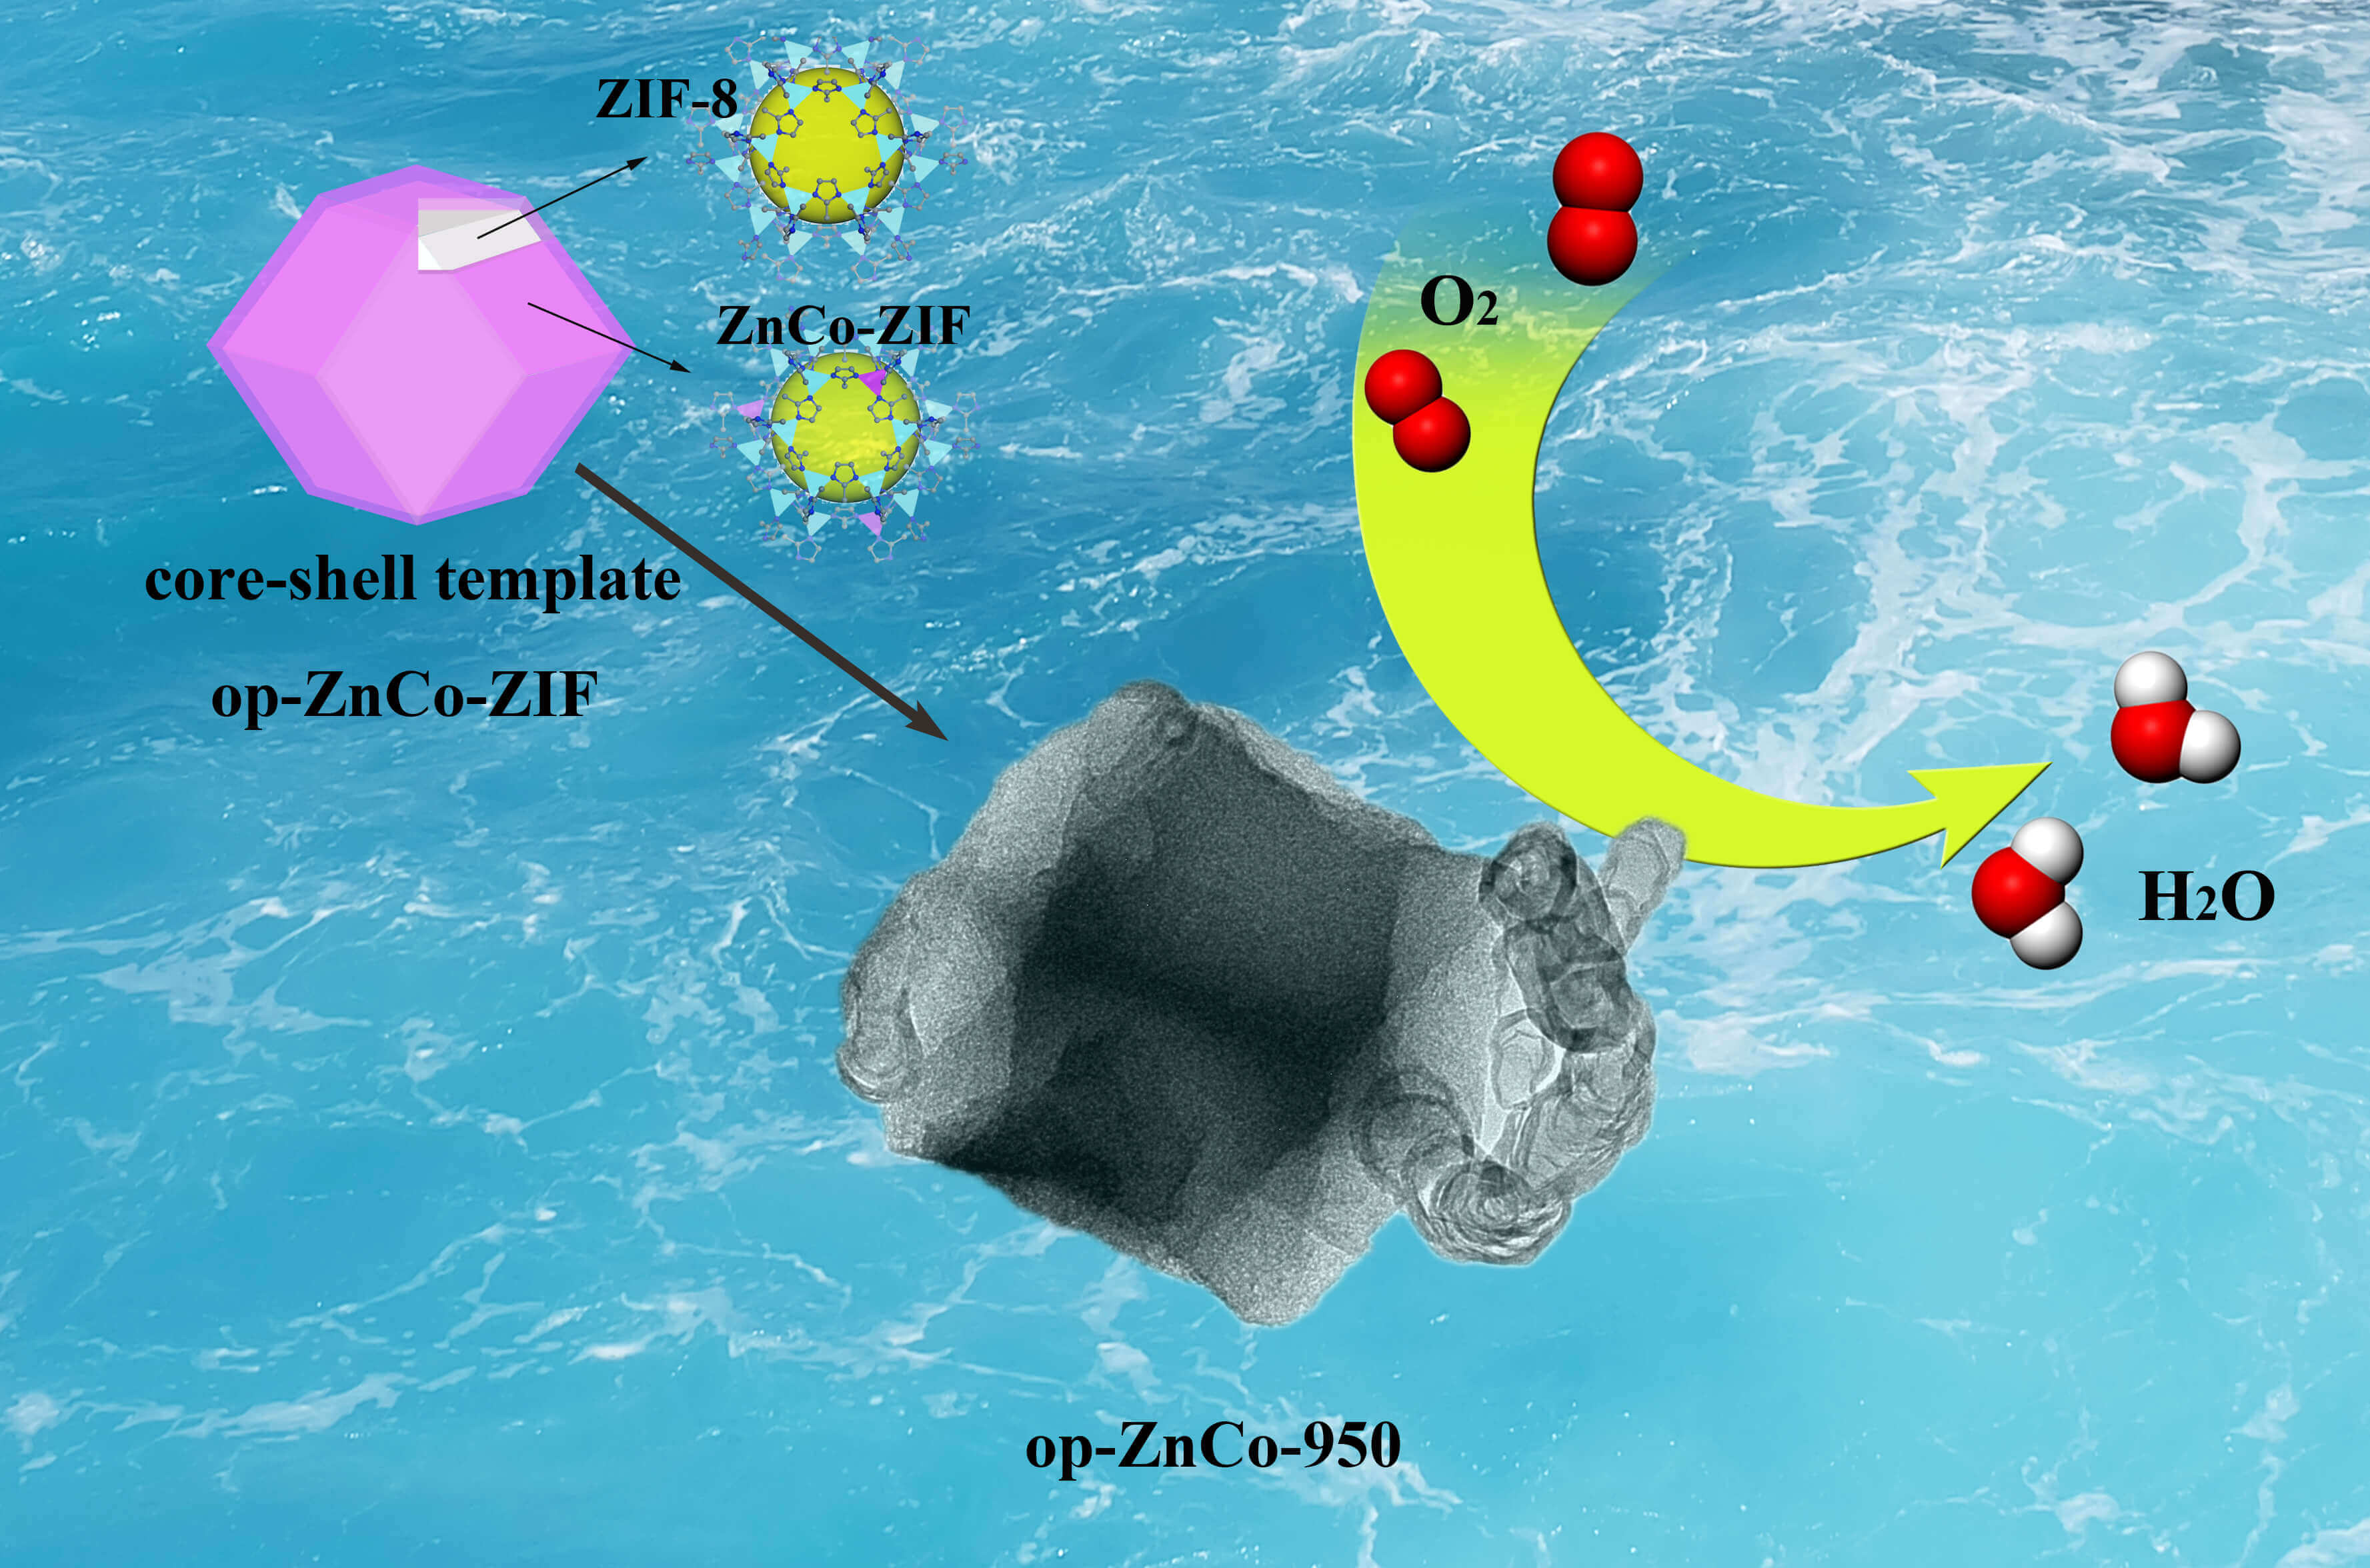 Zeolitic-imidazolate Framework (ZIF)@ZnCo-ZIF Core-shell Template Derived Co, N-doped Carbon Catalysts for Oxygen Reduction Reaction